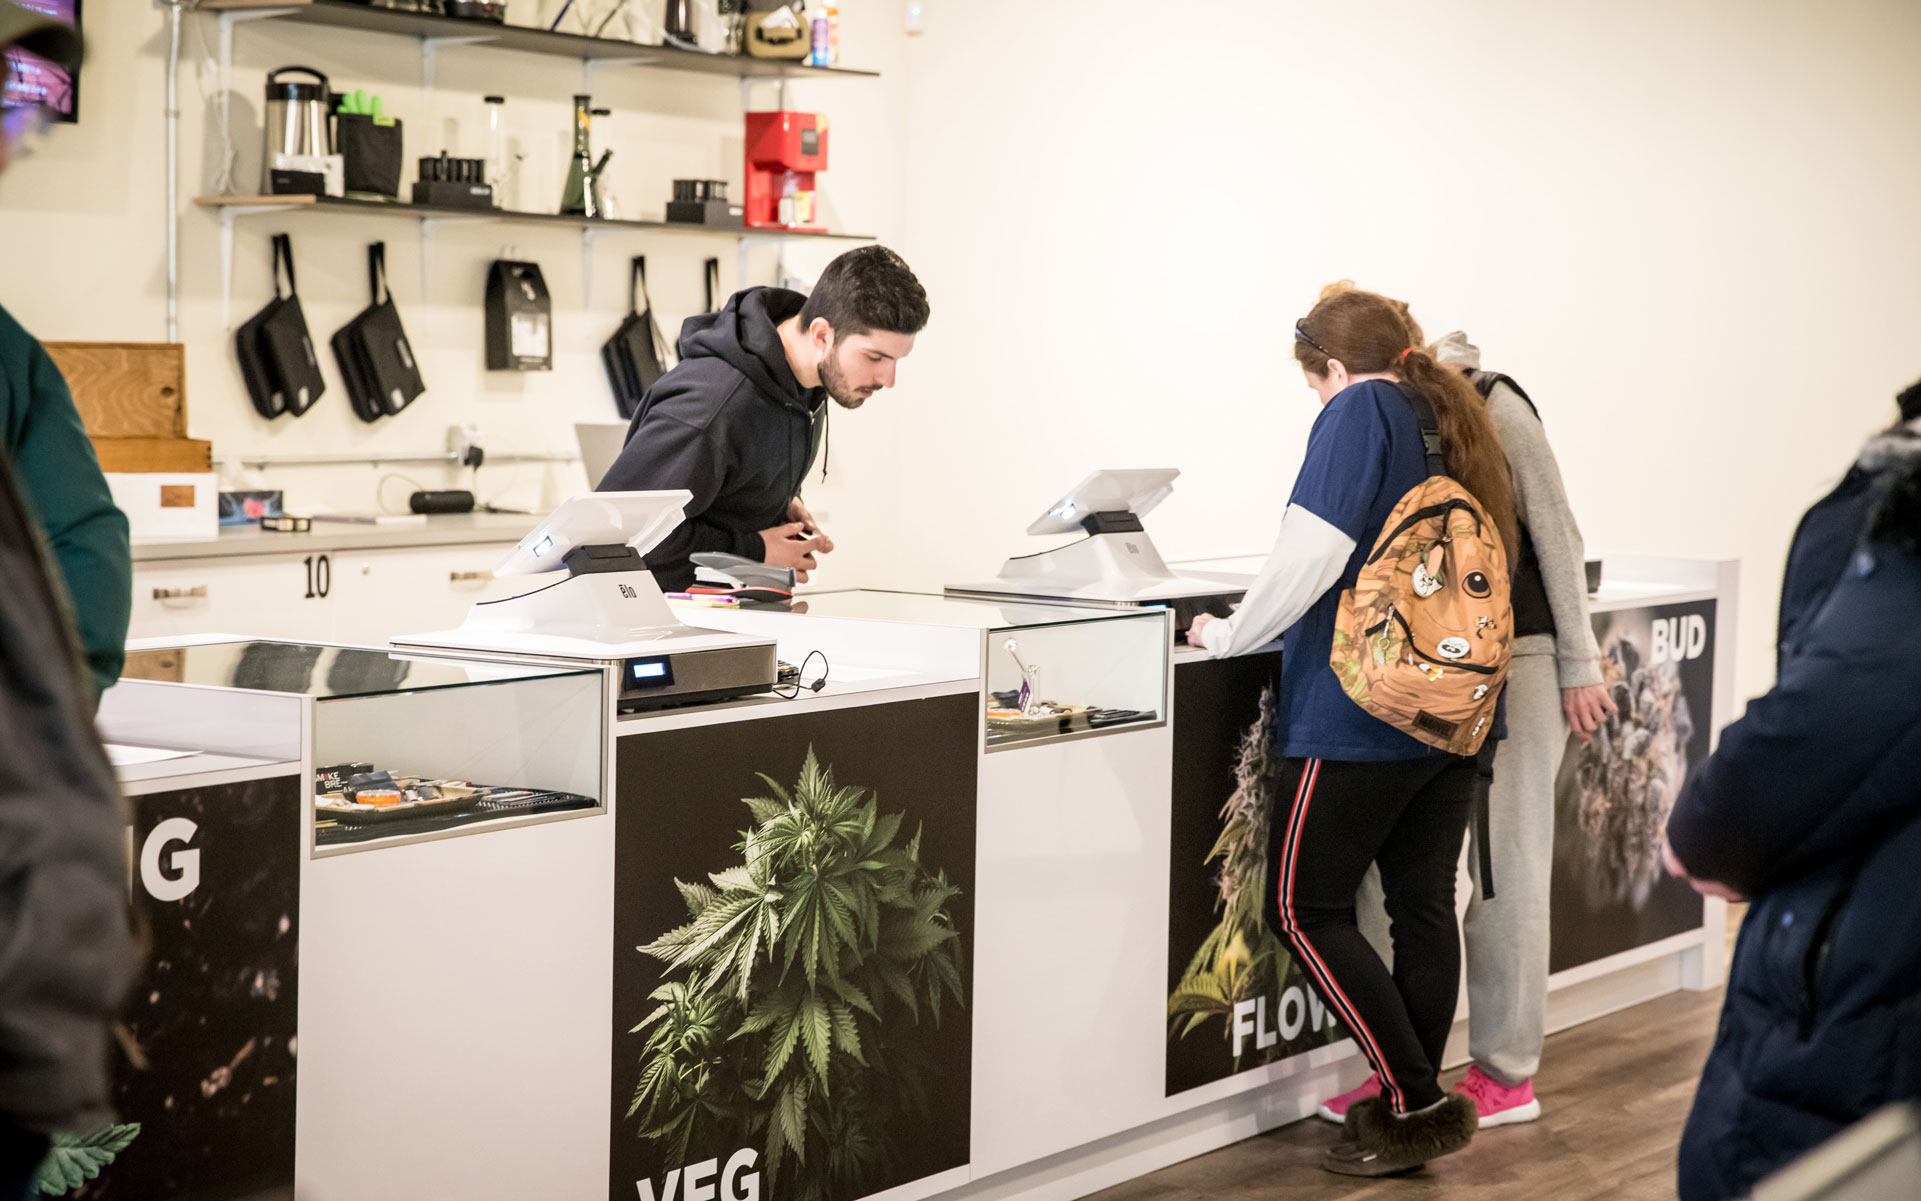 The Niagara Herbalist Ontario cannabis retail